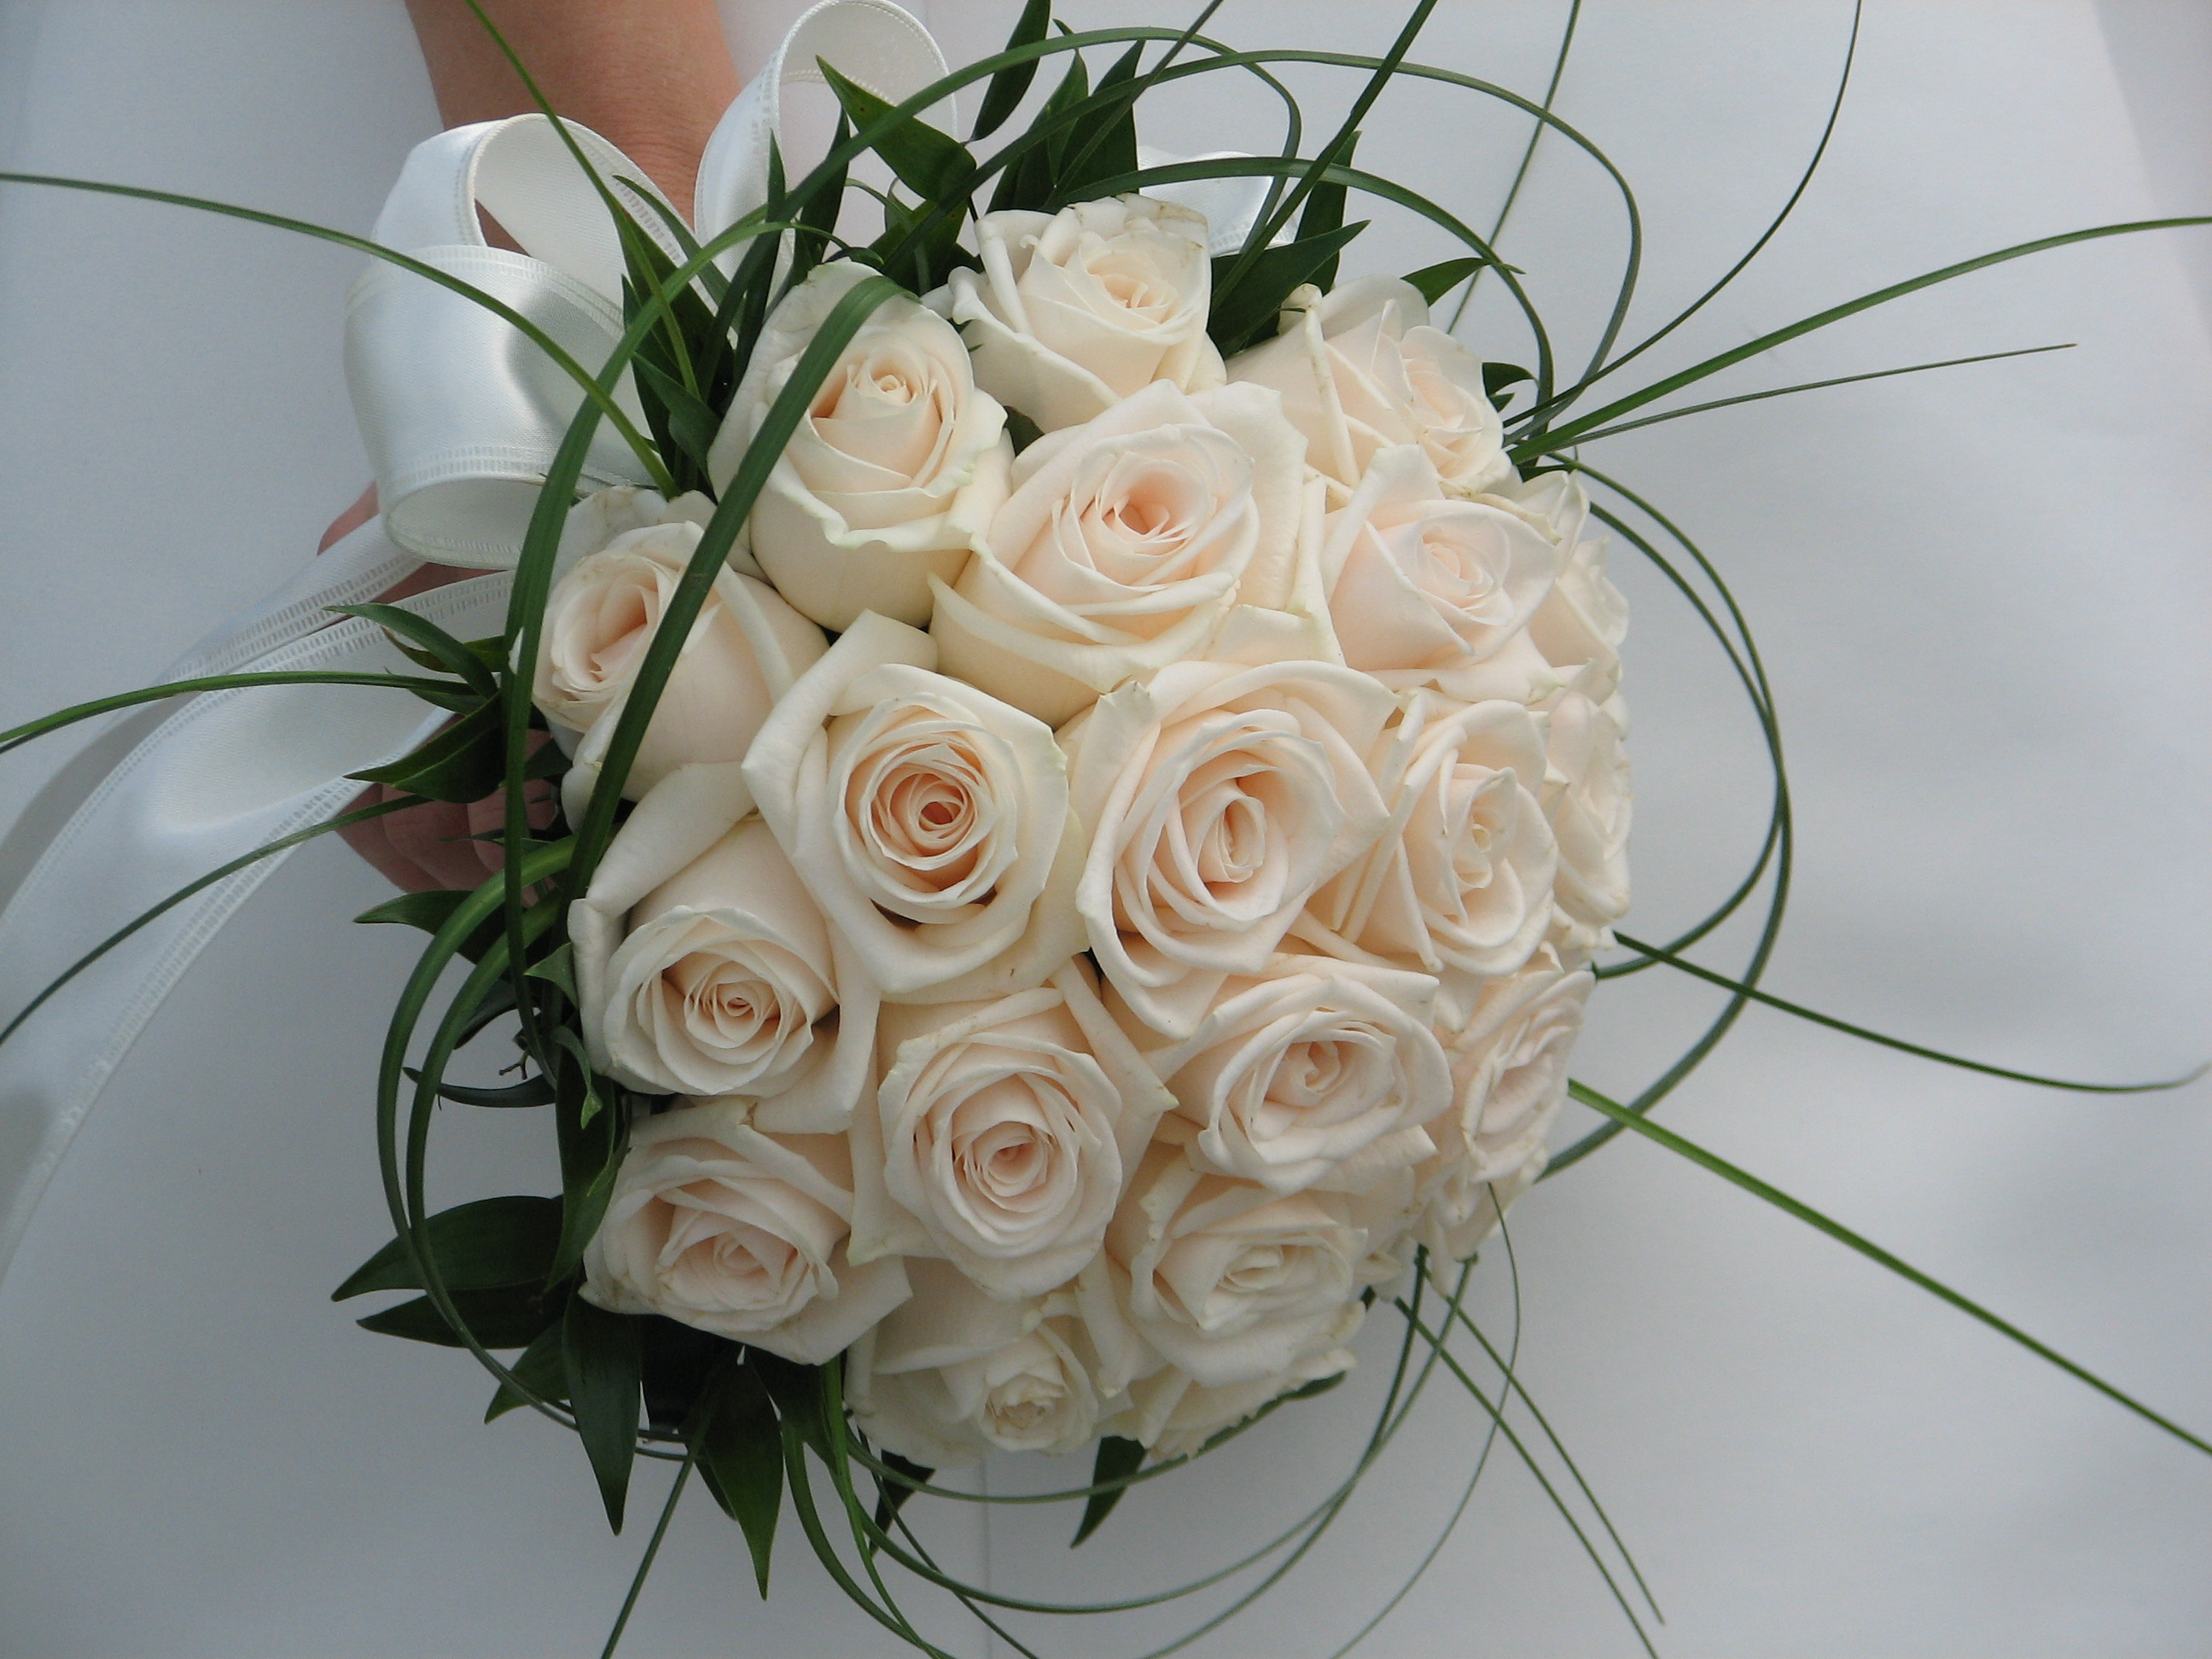 Bouquets with Seasonal Flowers For Weddings